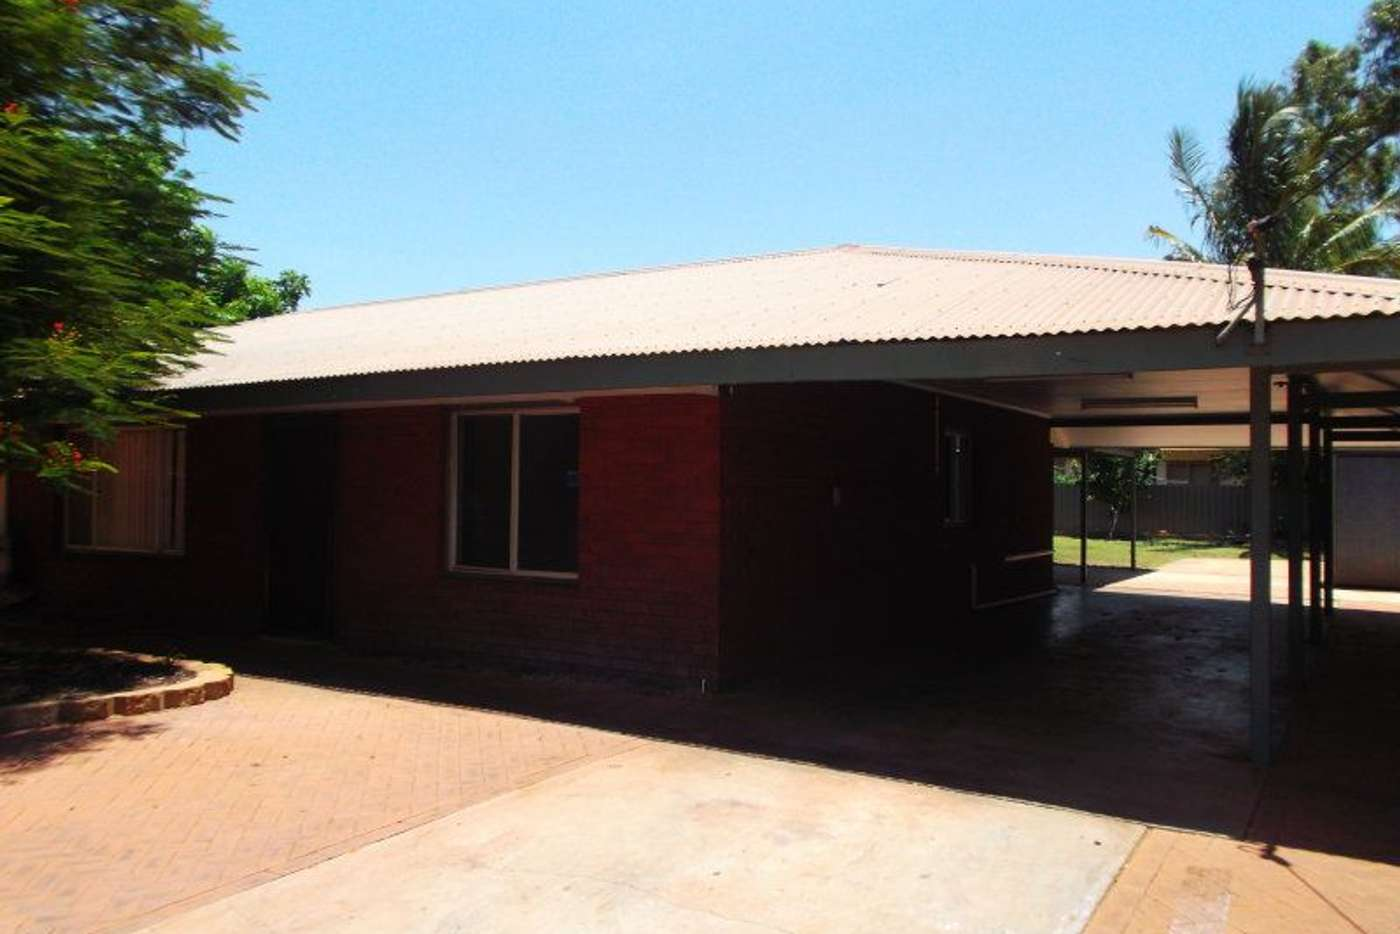 Main view of Homely house listing, 26 Roberts Street, South Hedland WA 6722